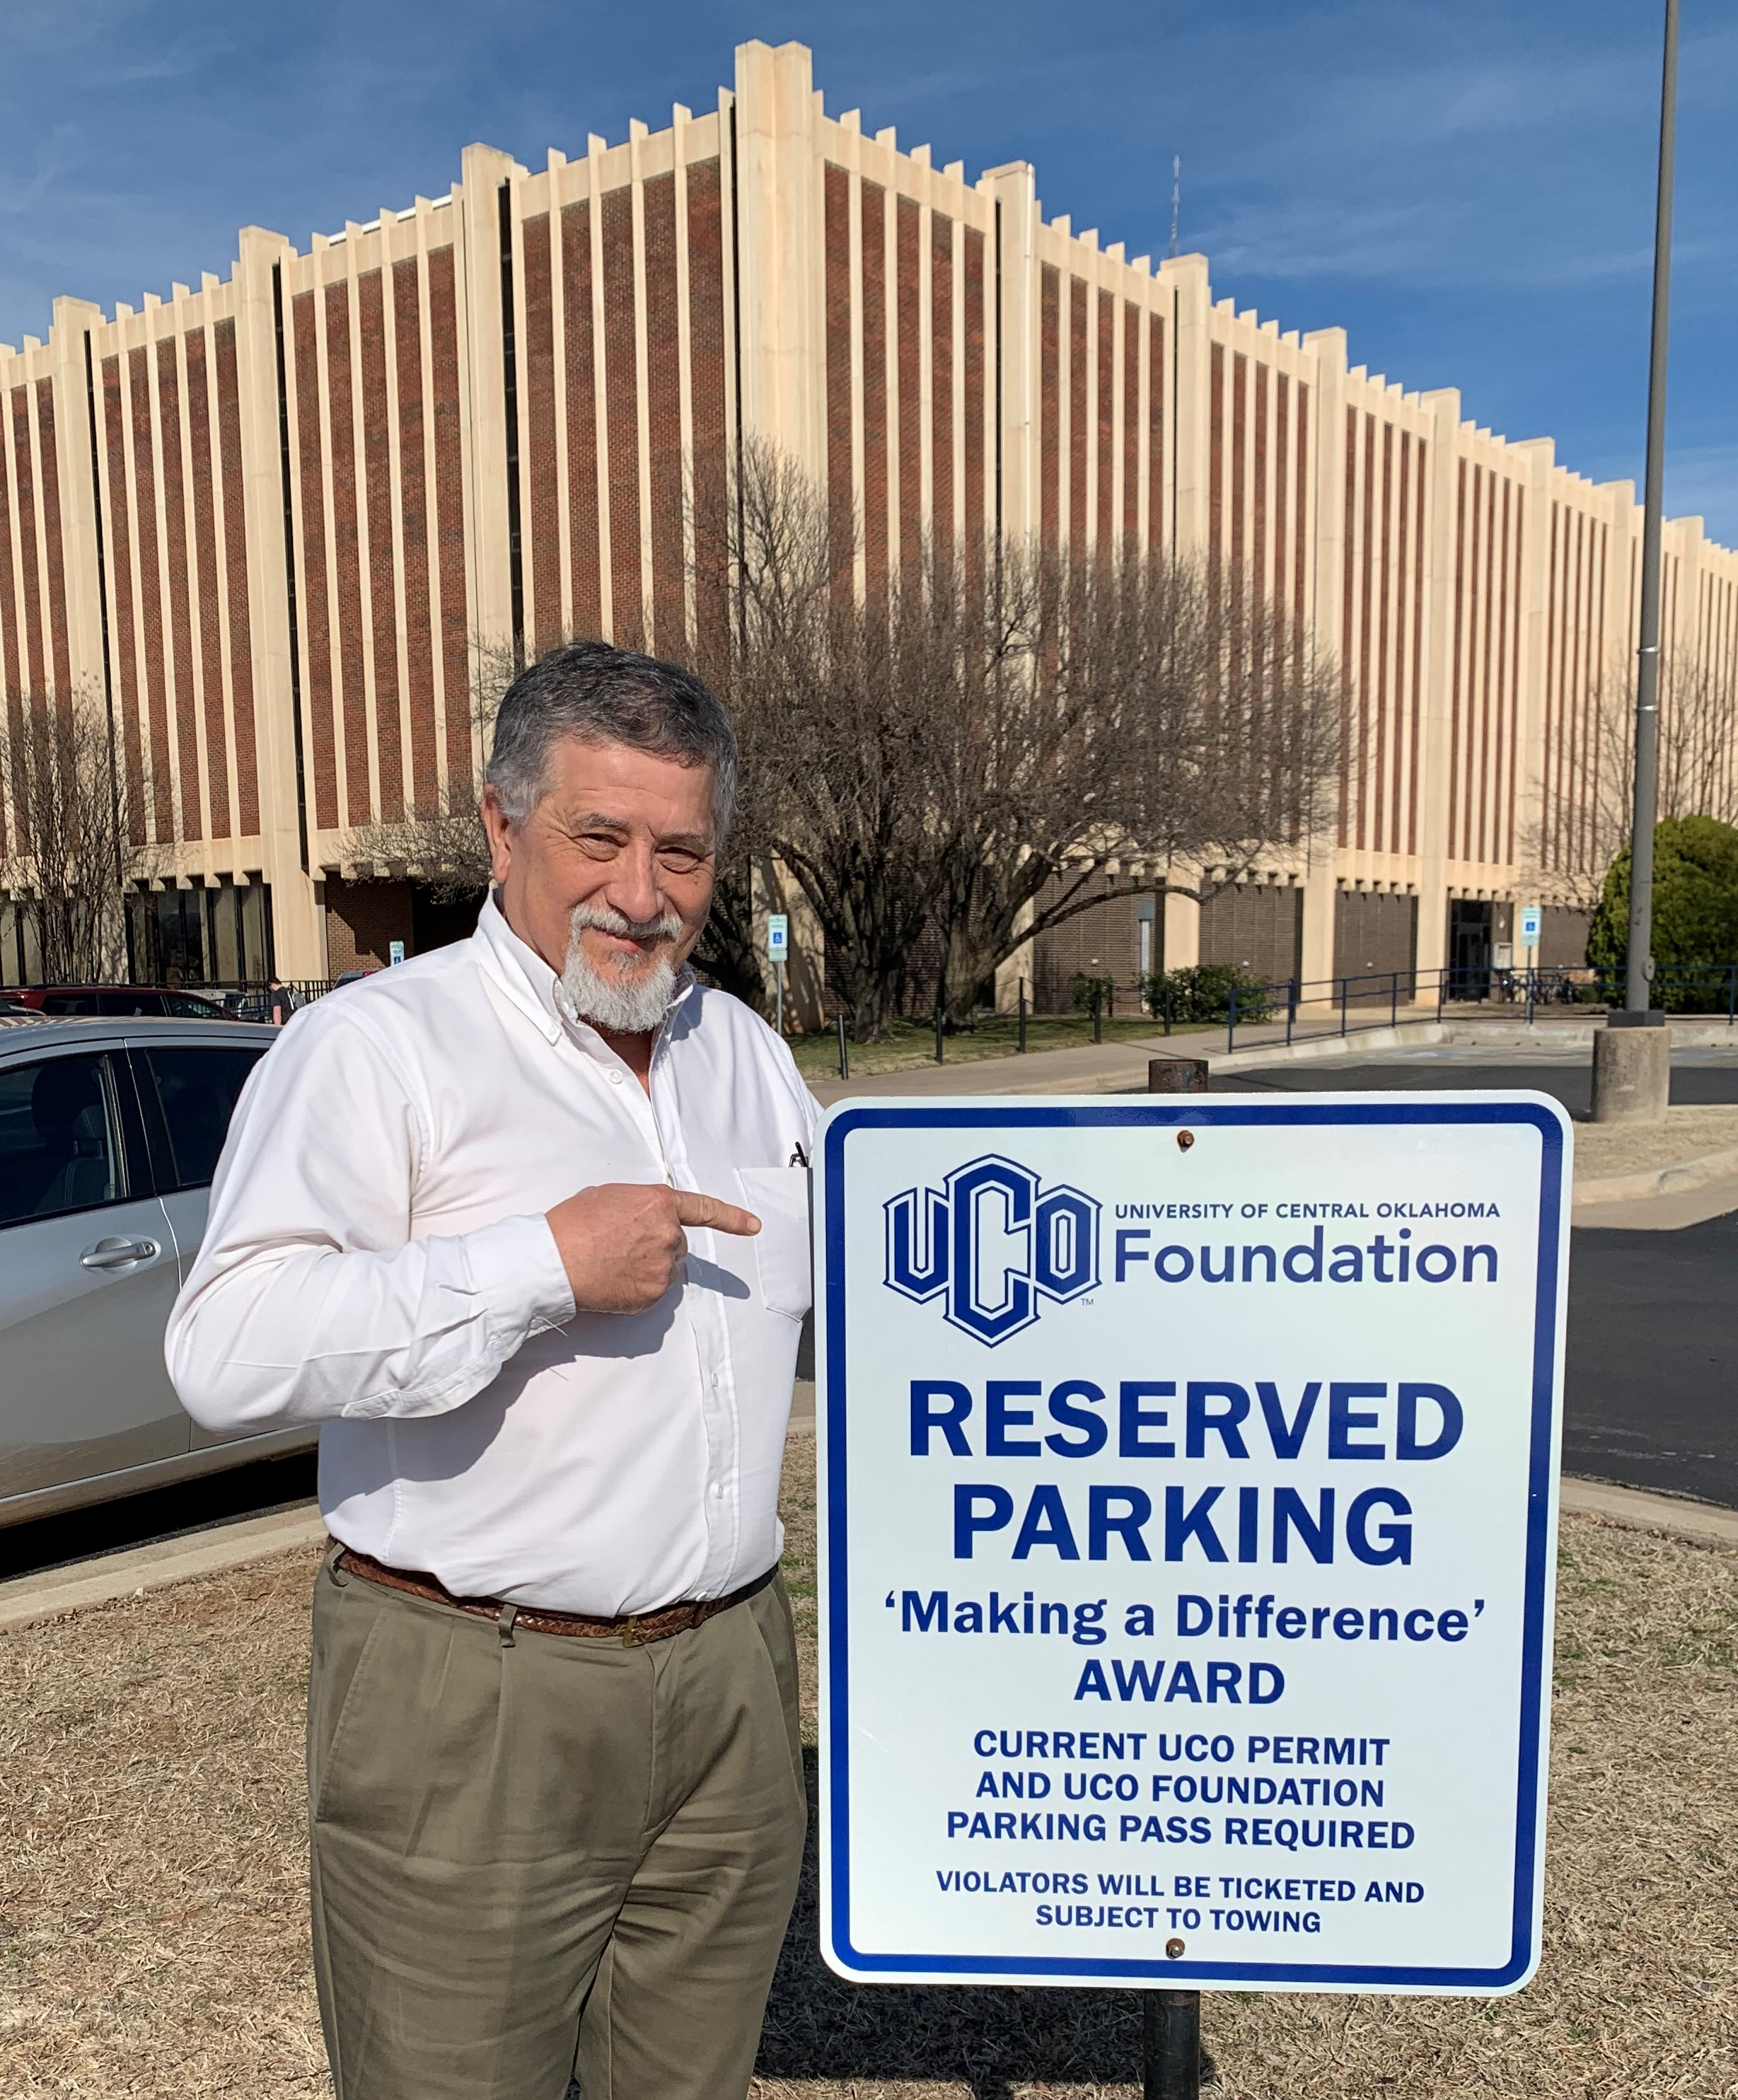 UCO employee Michael Calhoun stands by parking space